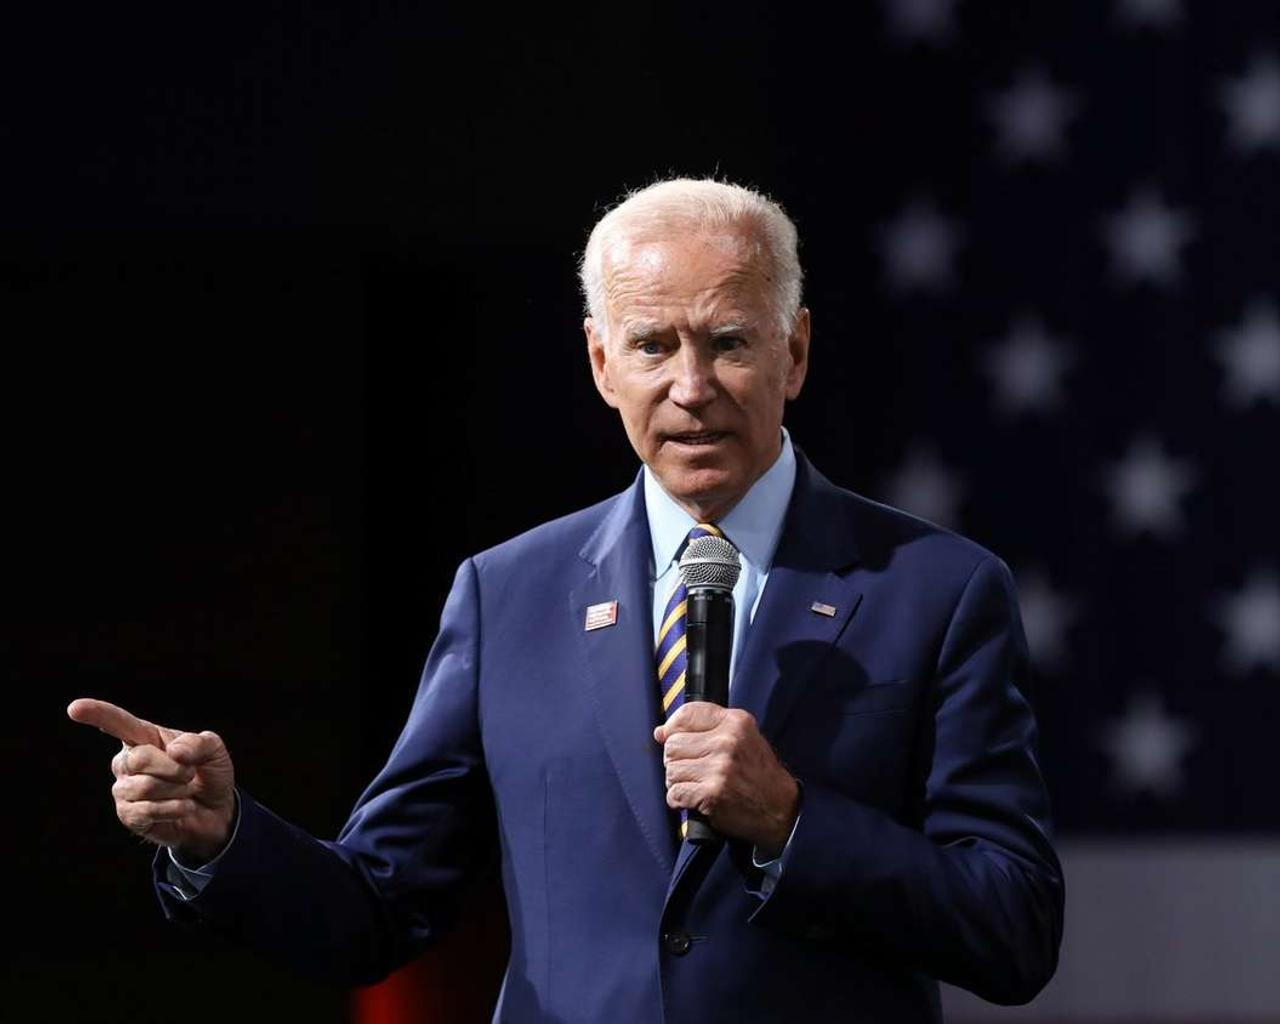 Biden is expected to announce executive steps aimed at reducing gun violence.